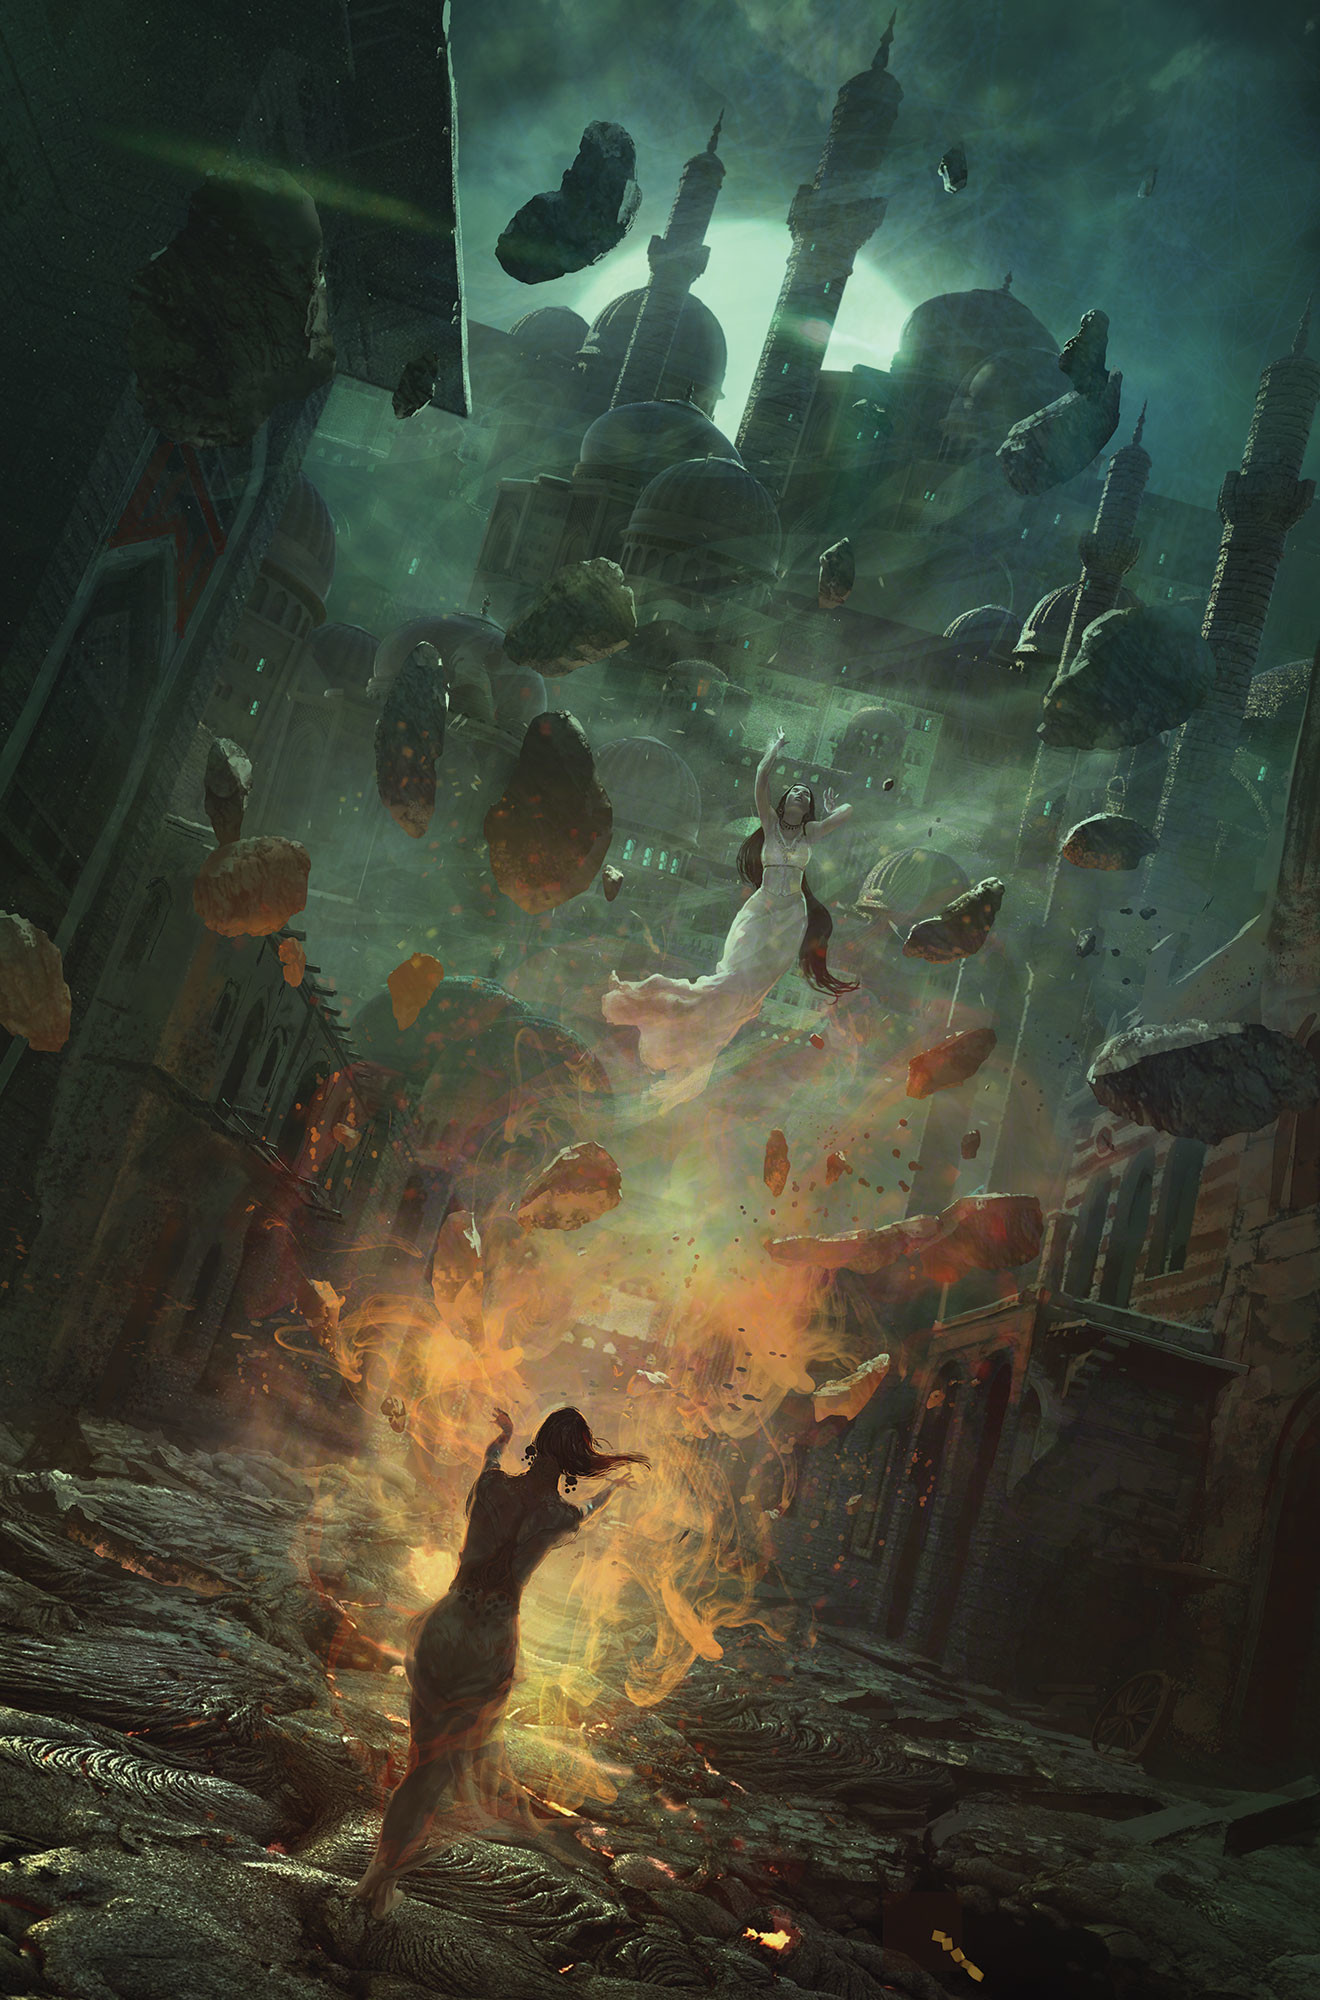 Marc simonetti street fight3